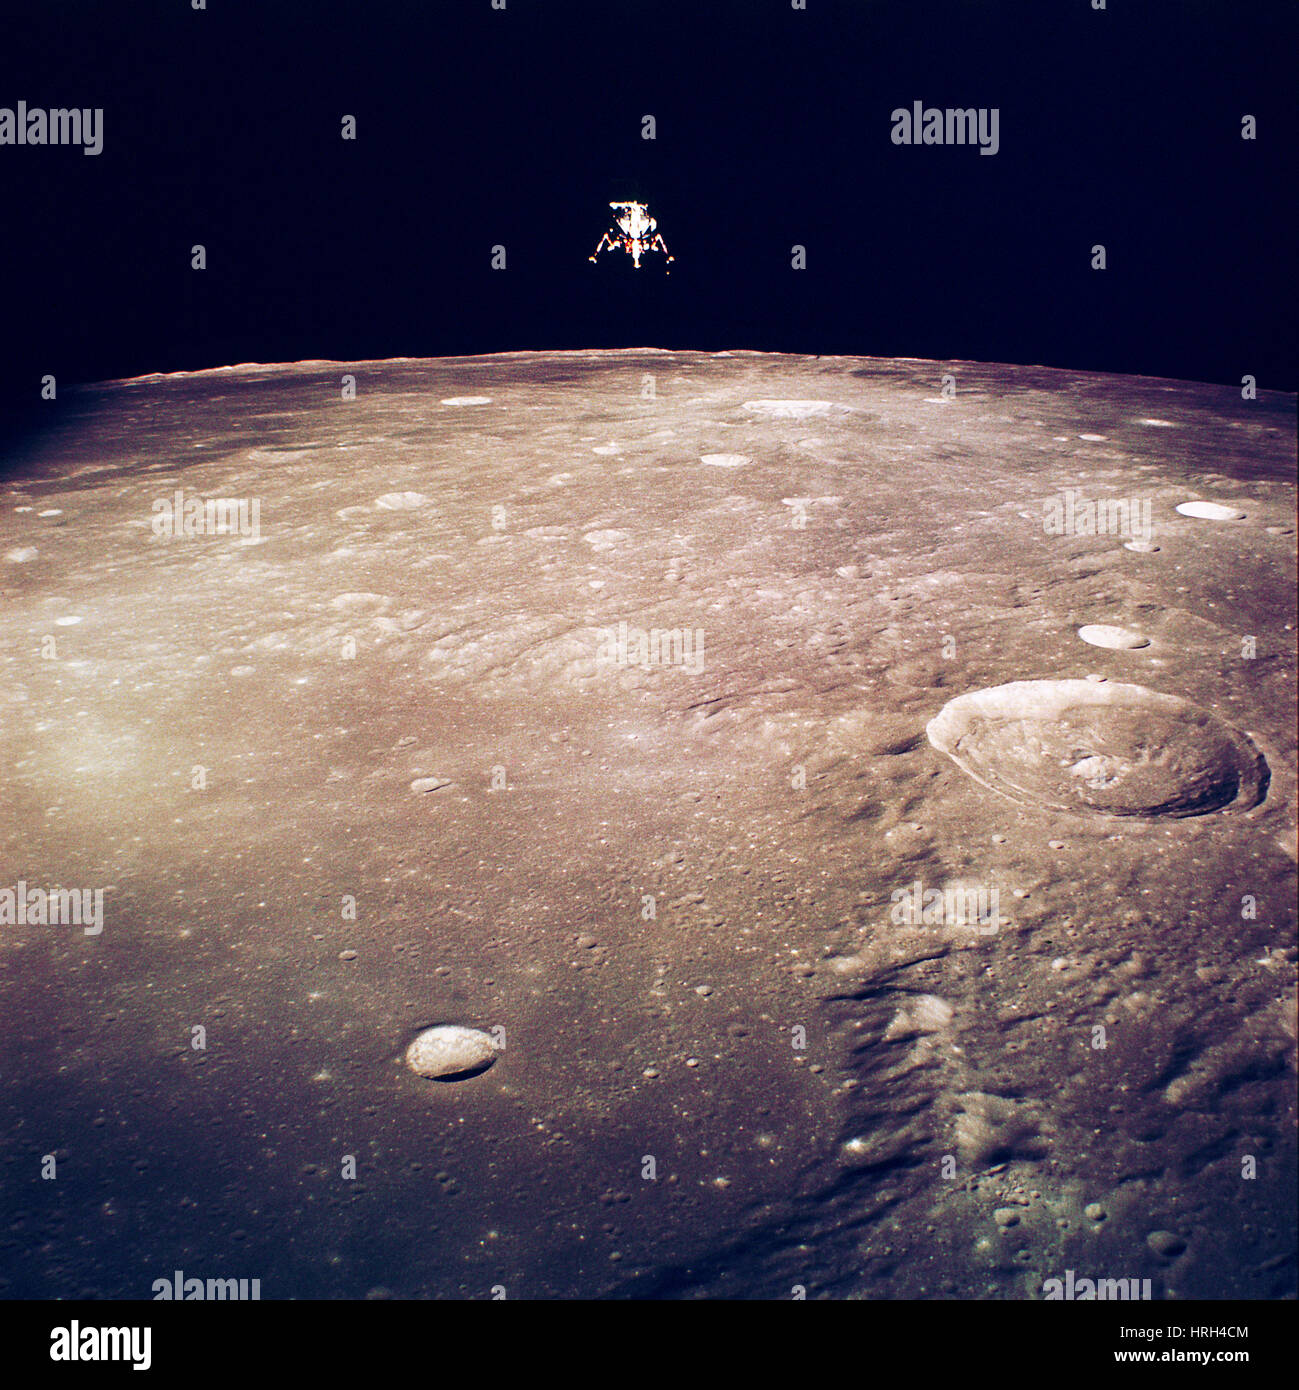 Apollo 12 Lunar Lander - Stock Image